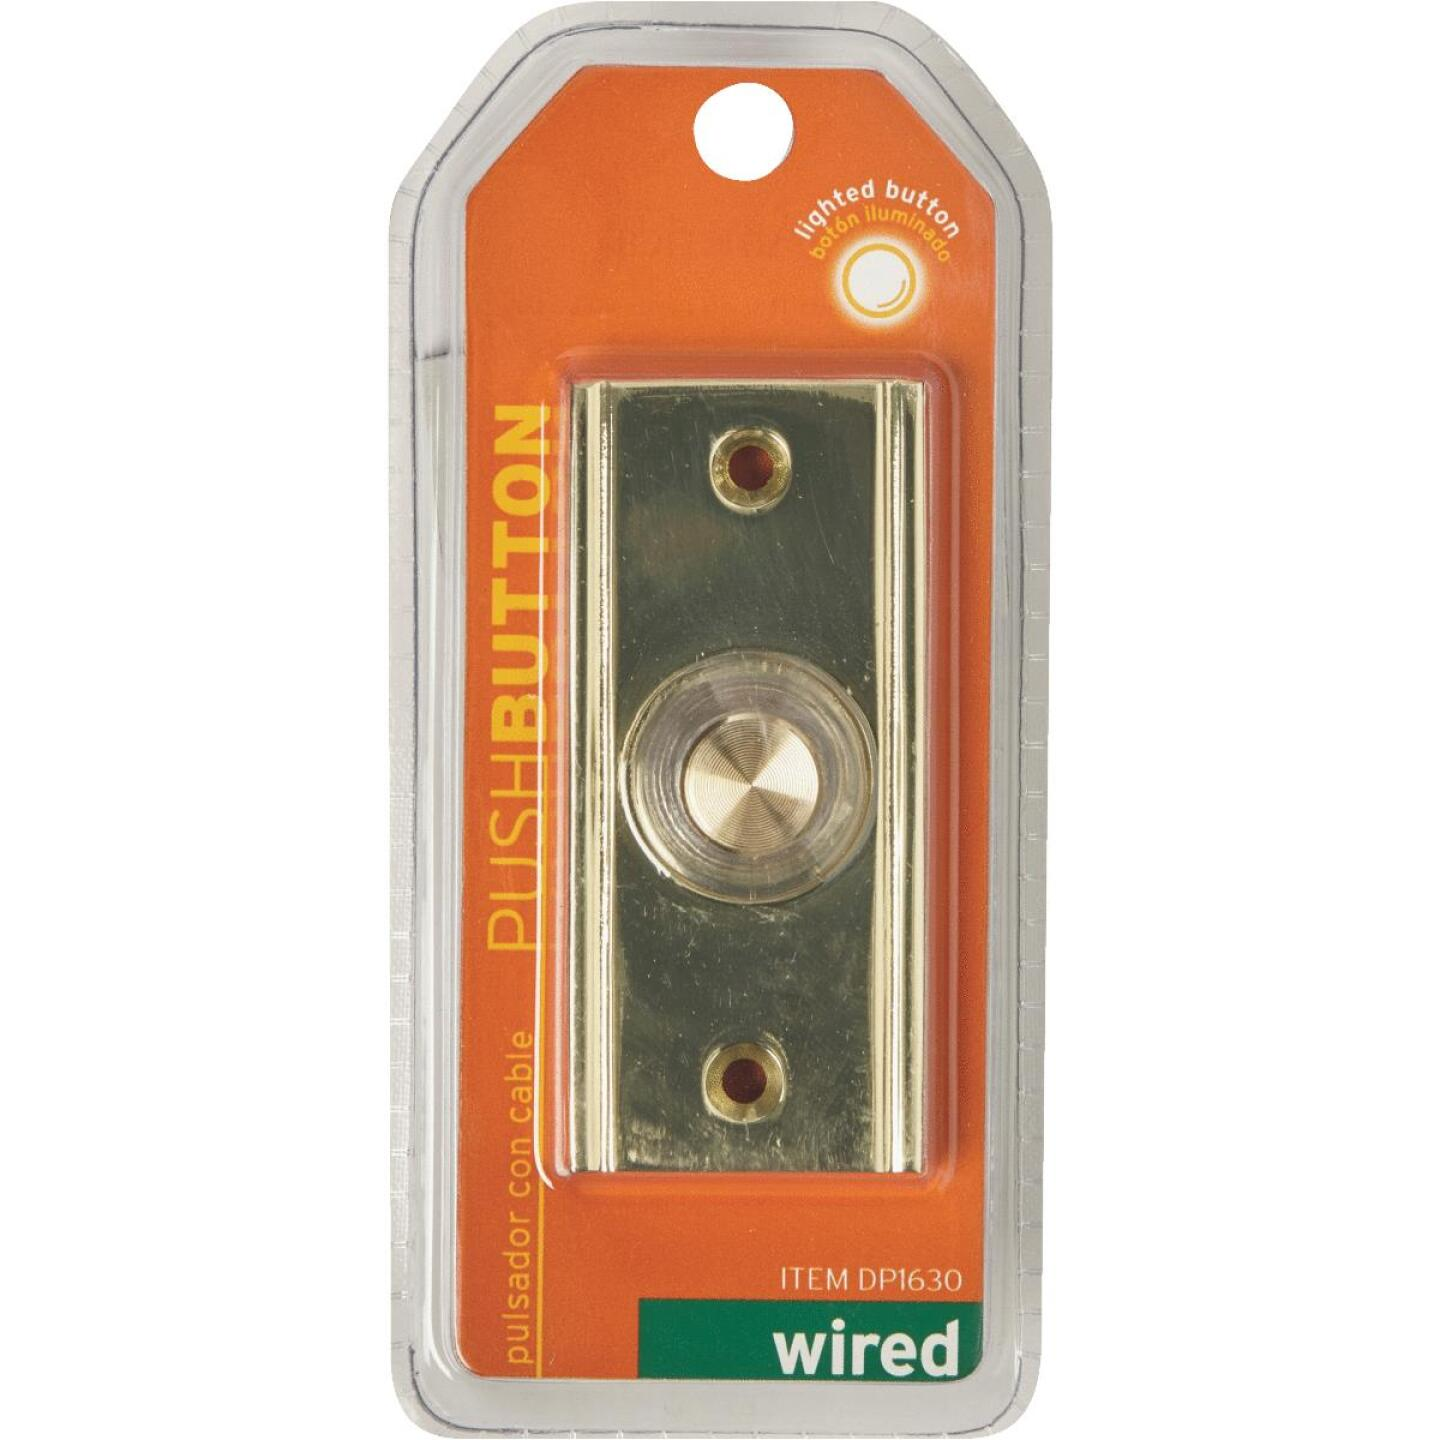 IQ America Wired Polished Brass Lighted Doorbell Push-Button Image 2